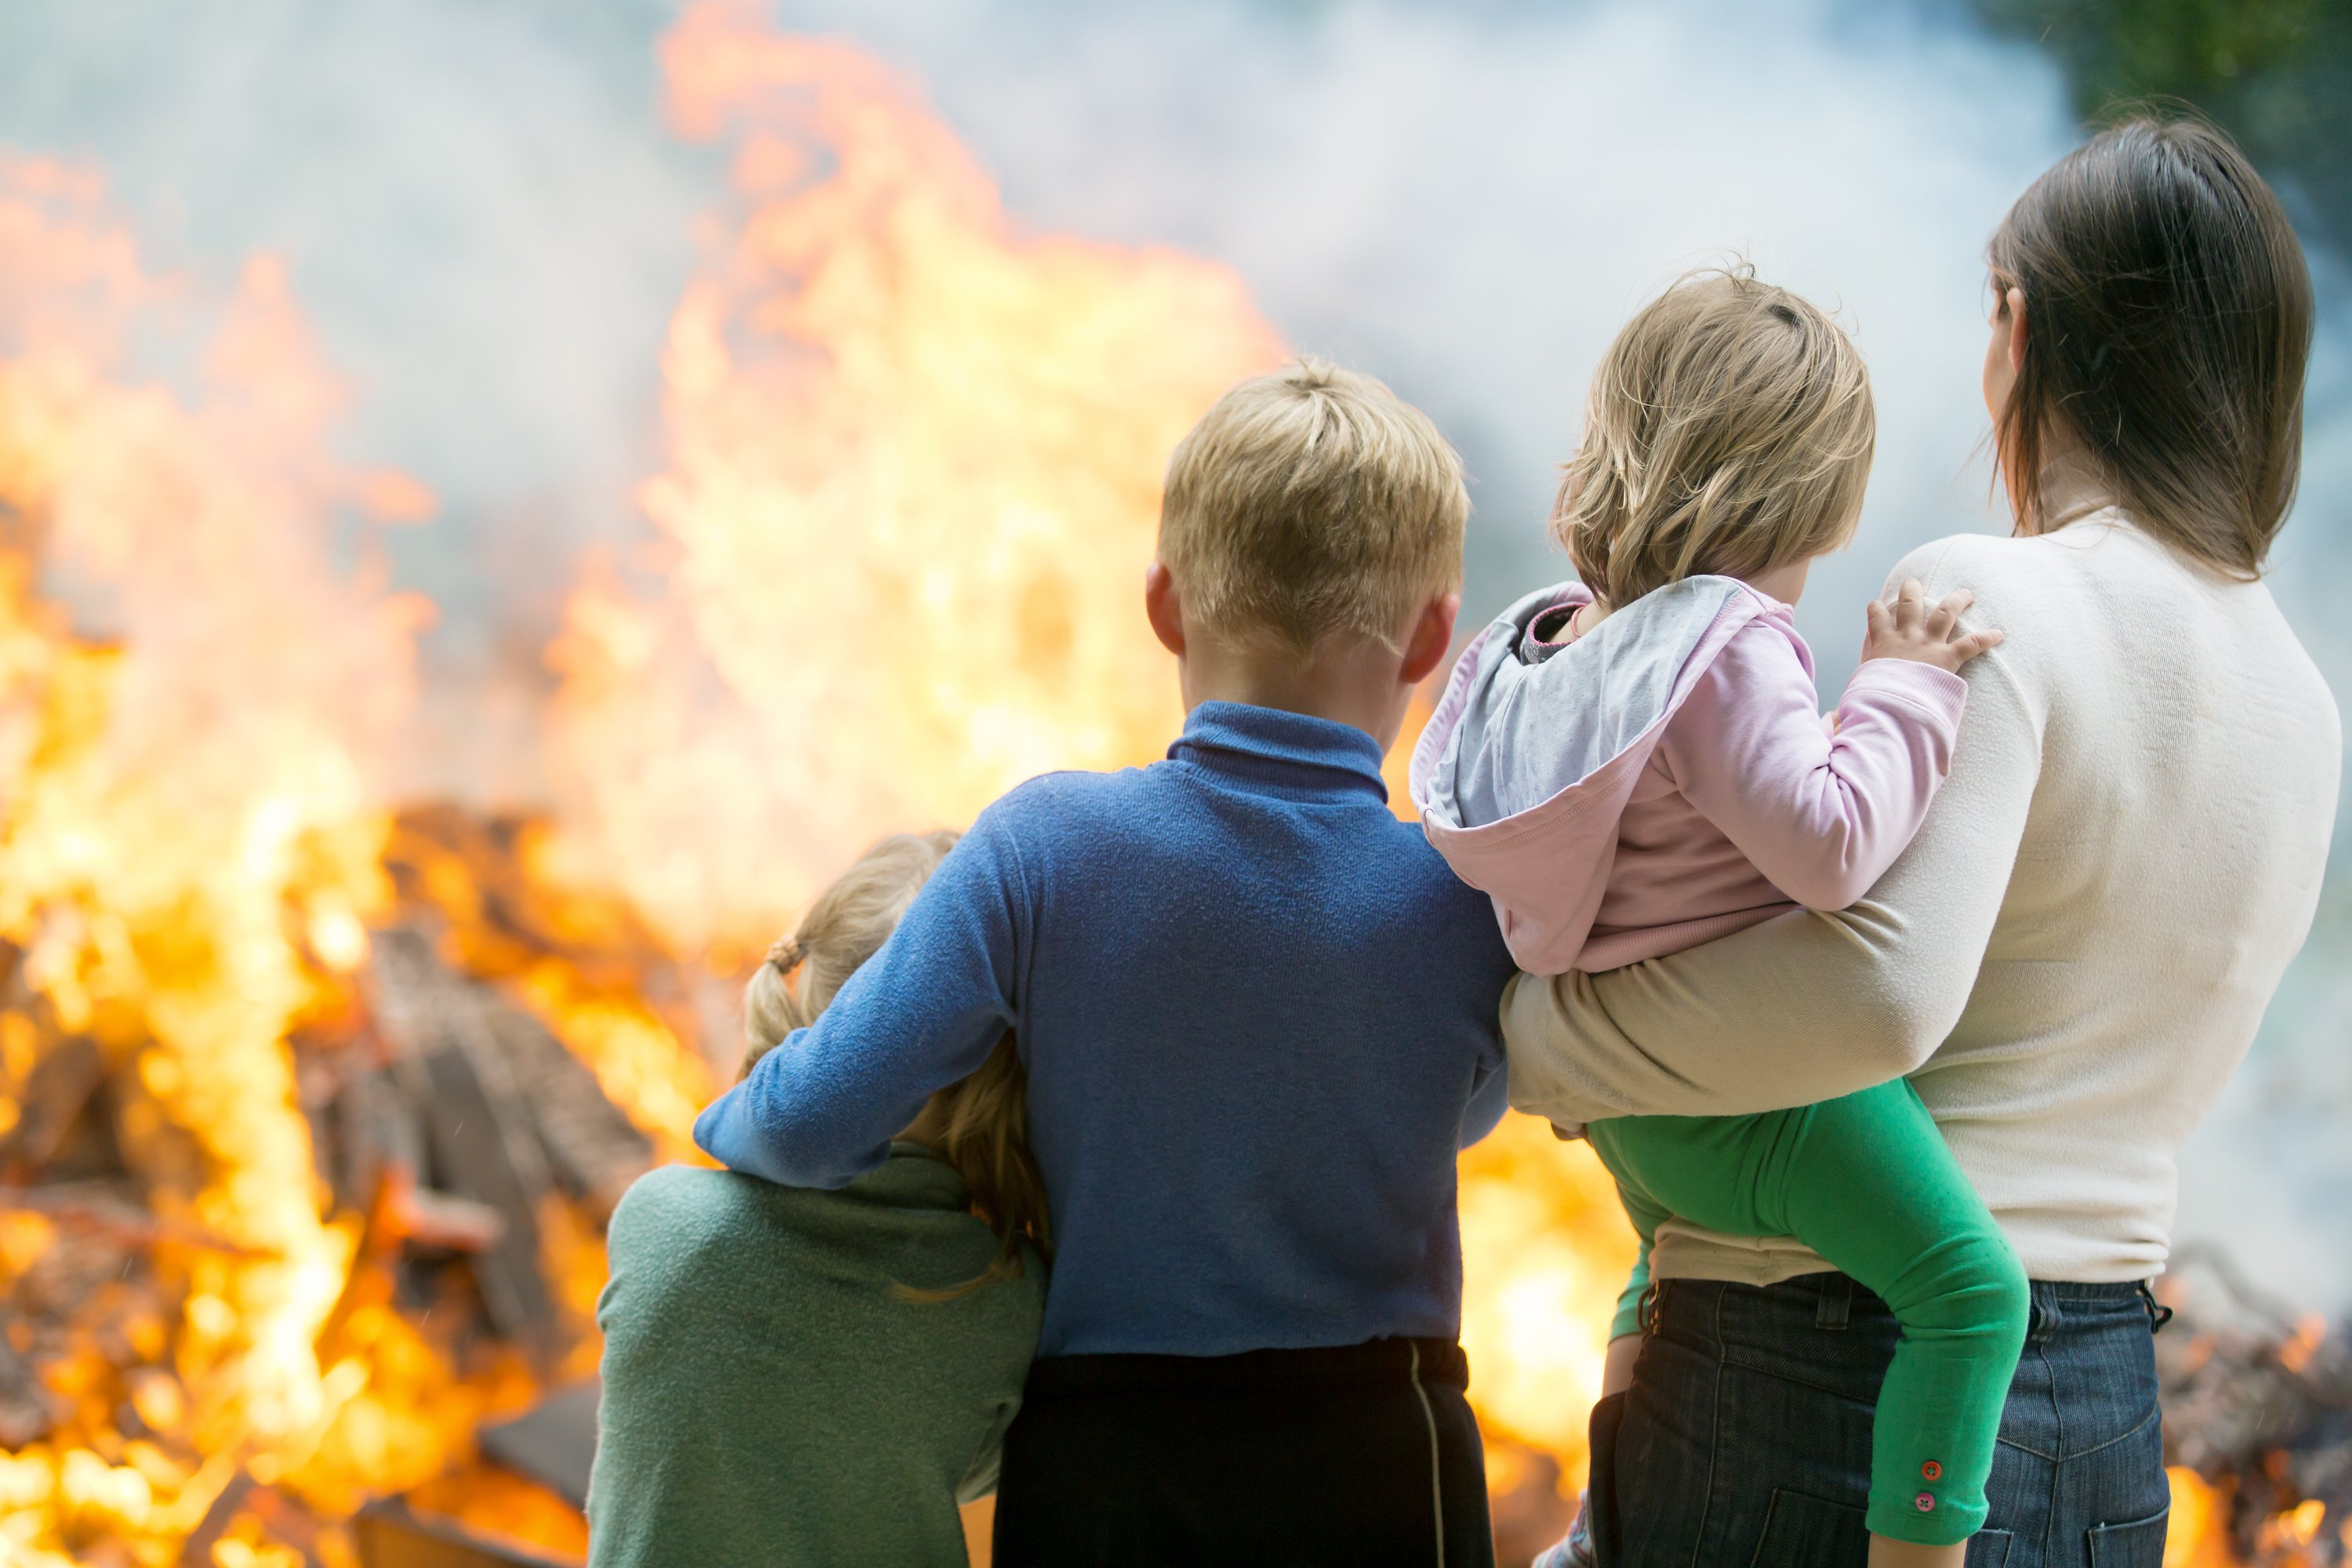 Family standing outside burning home. Image credit: Shutterstock